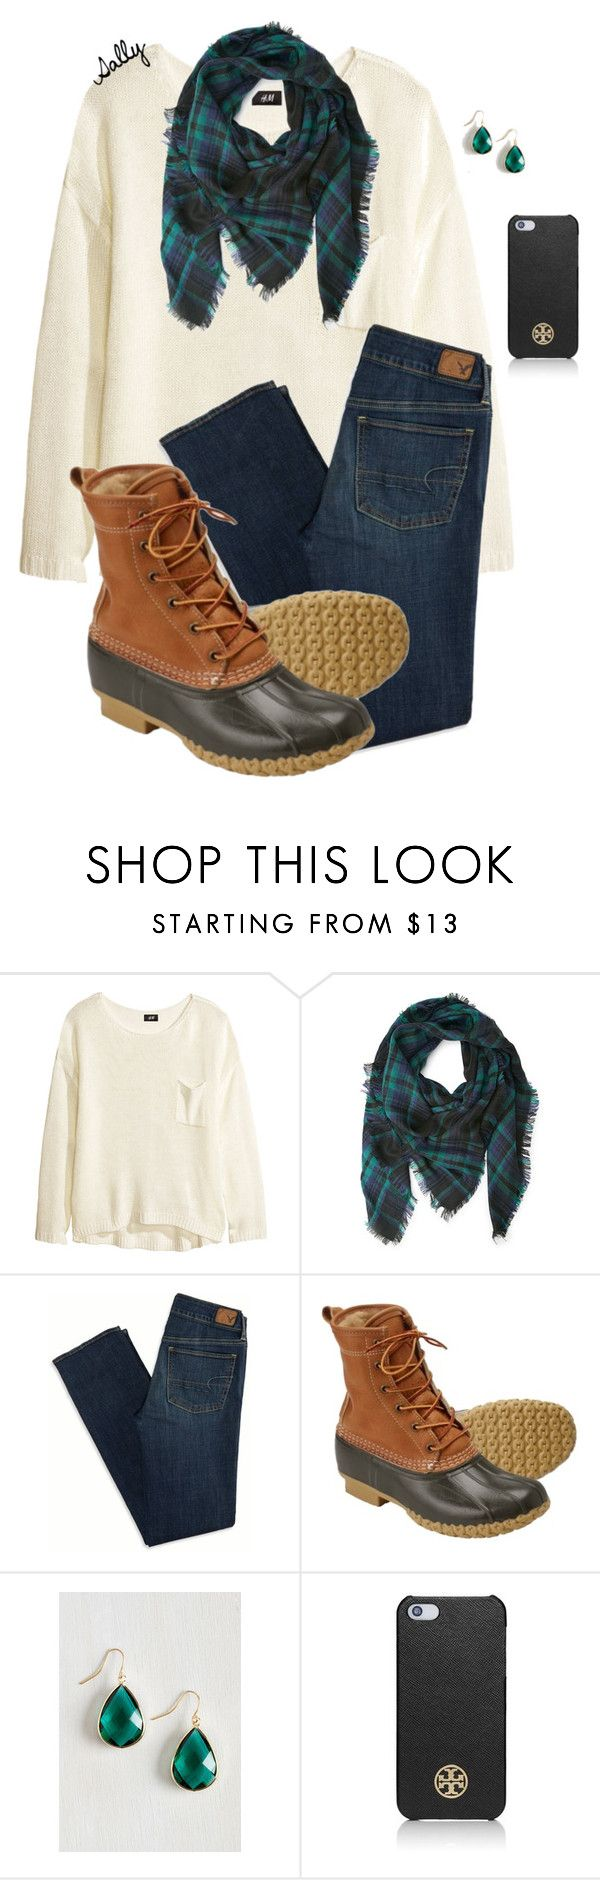 """""""How to wear Bean Boots"""" by sc-prep-girl ❤ liked on Polyvore featuring H&M, Forever 21, American Eagle Outfitters, L.L.Bean and Tory Burch"""